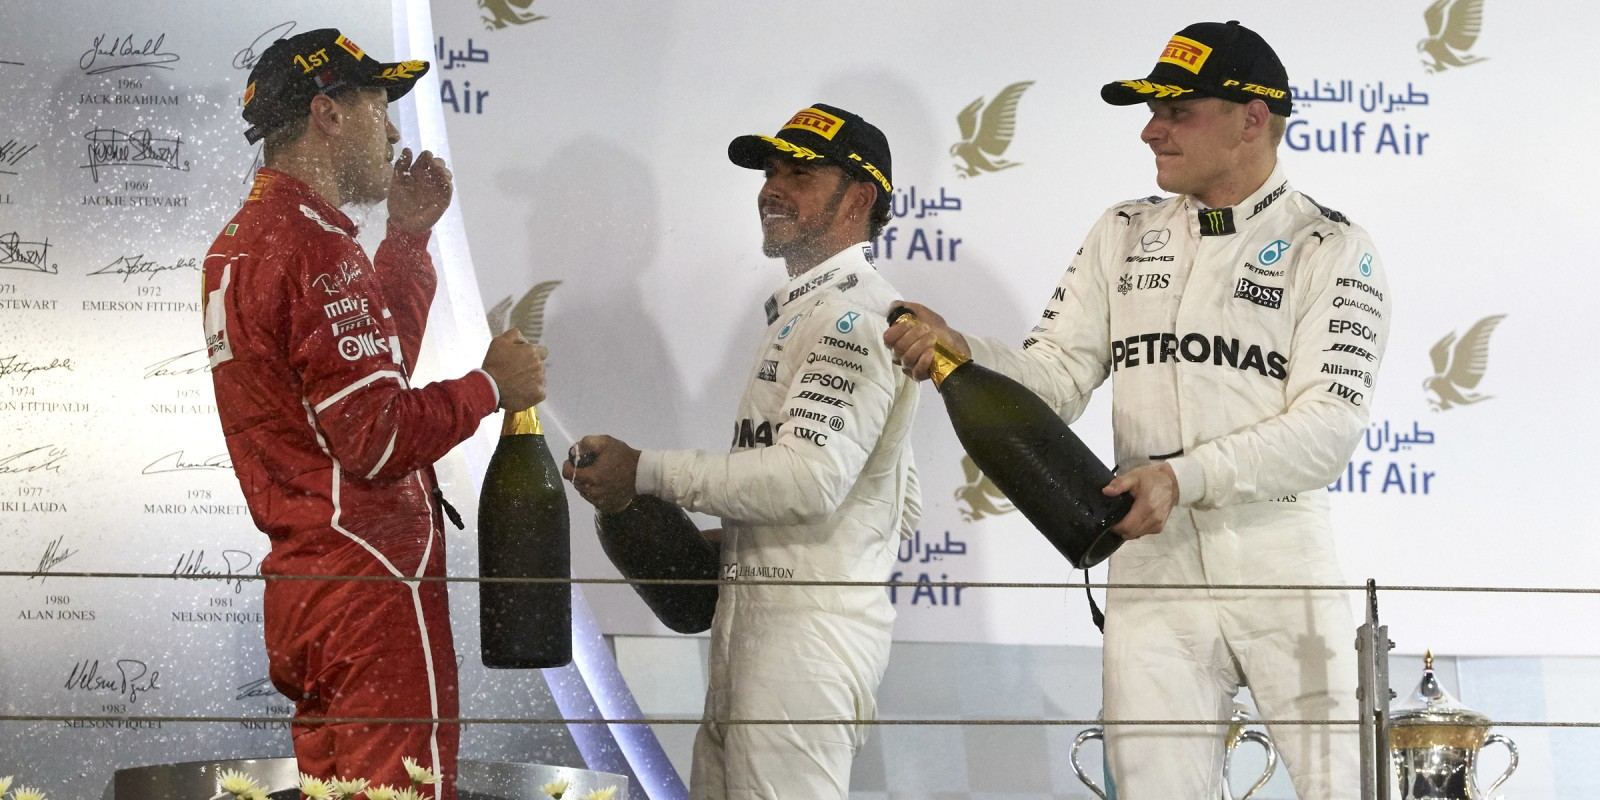 Sunday images from the 2017 Bahrain Grand Prix